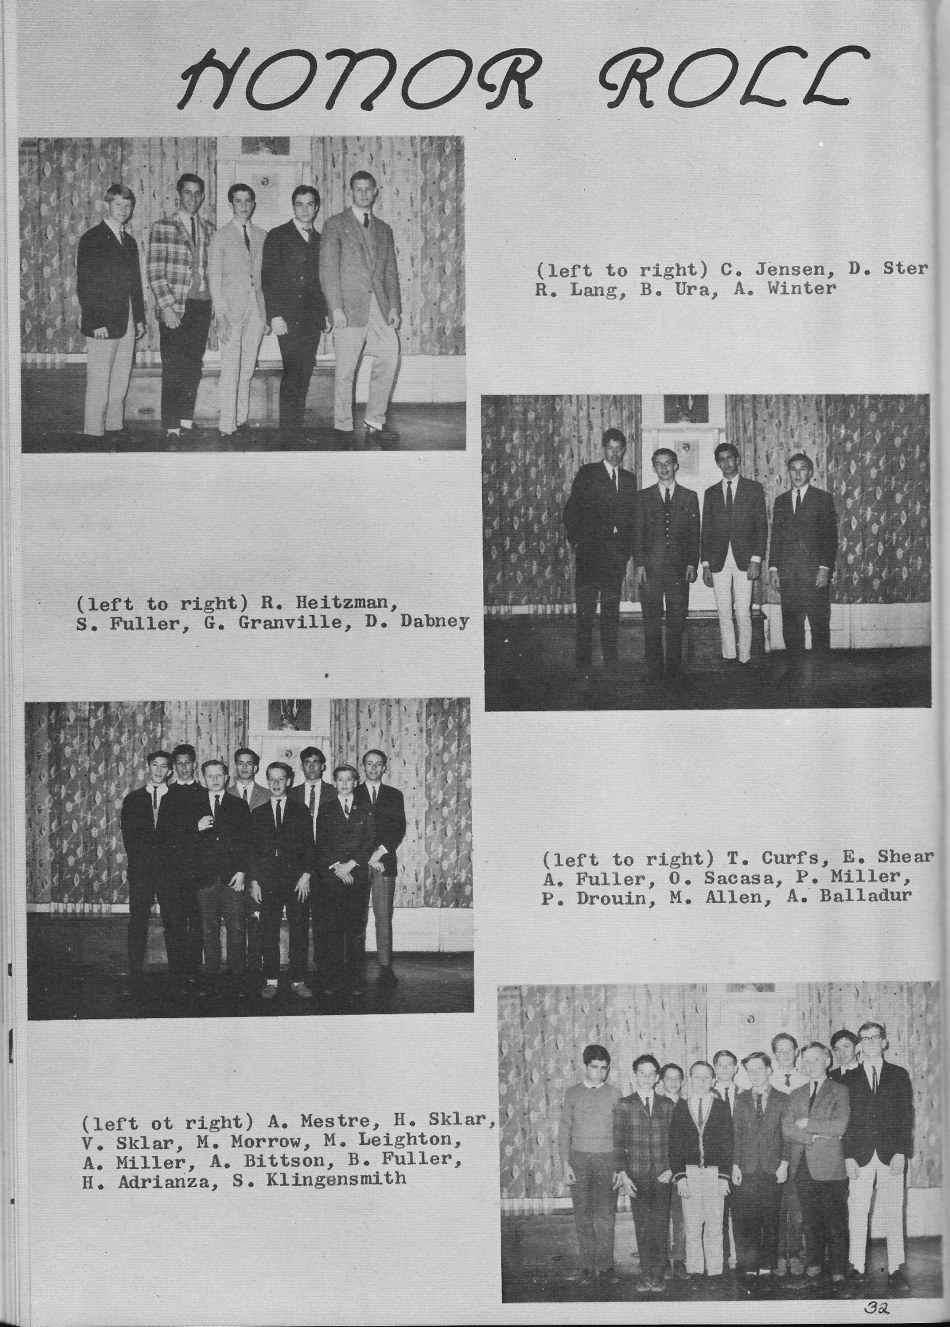 HONOR ROLL   for Villa Saint Jean International School  1965 Yearbook Le Chamois